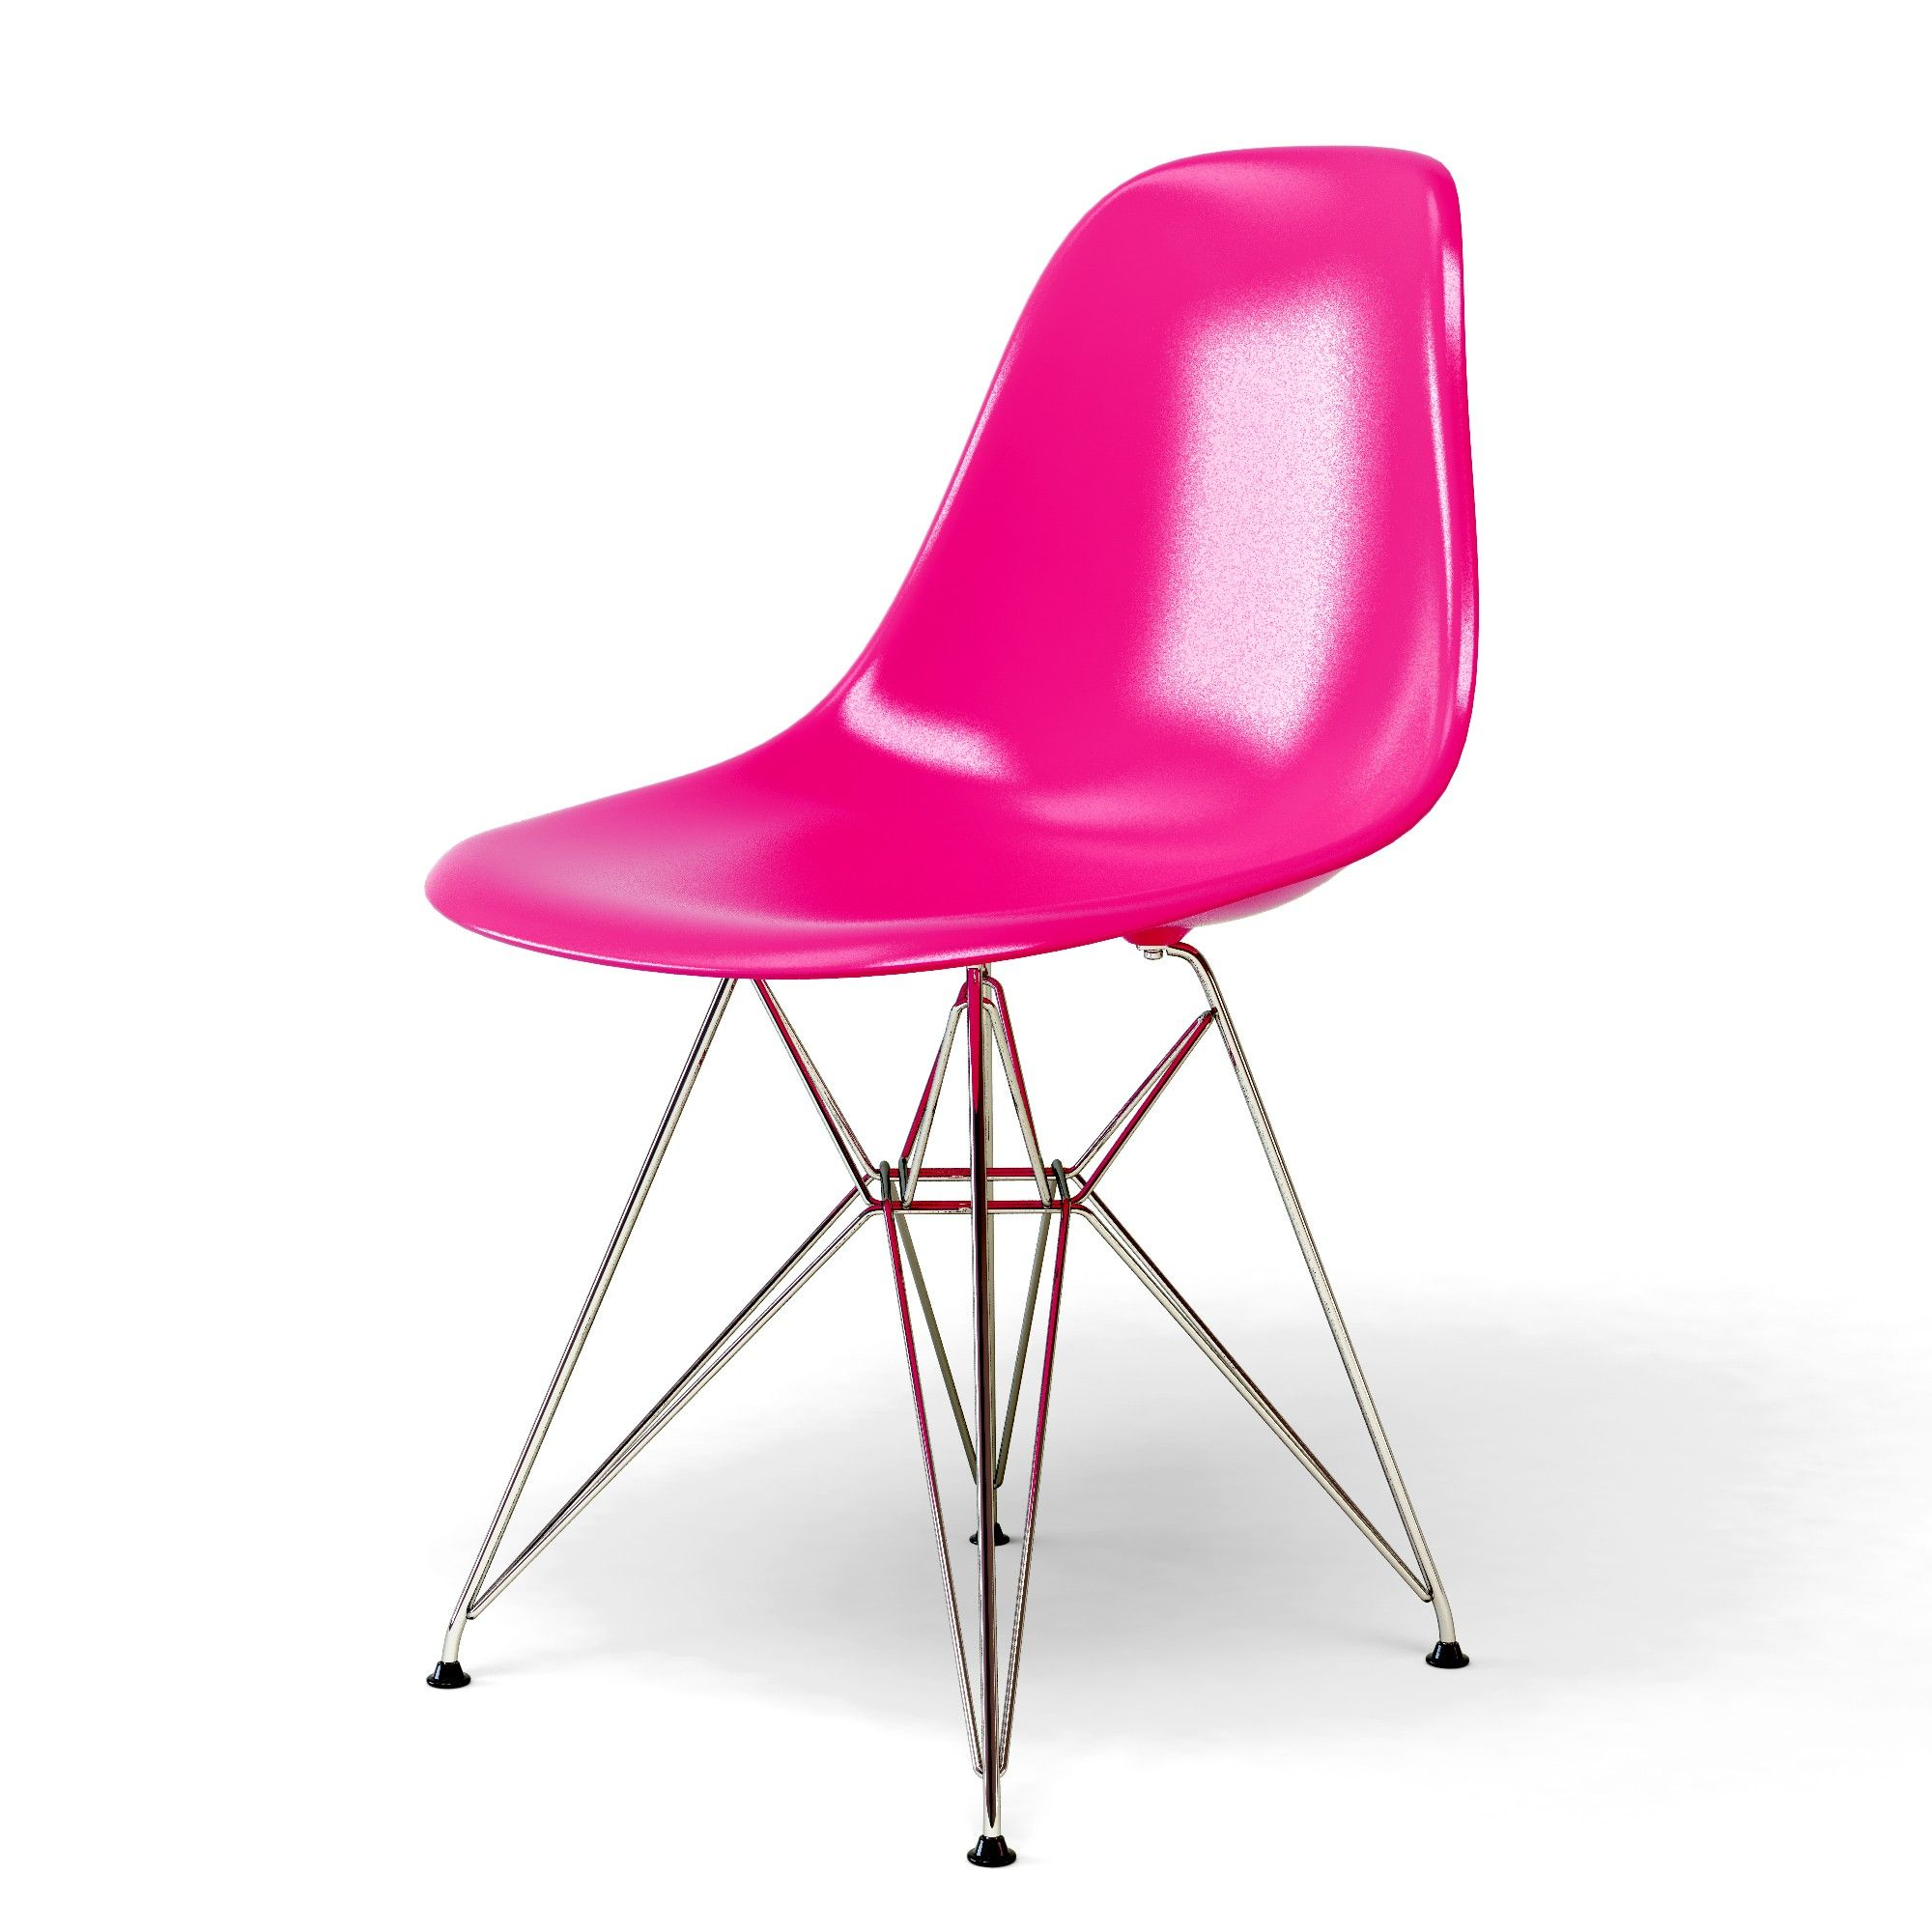 Eames chair chaise eames vert pomme fauteuil Chaise inspiration eames